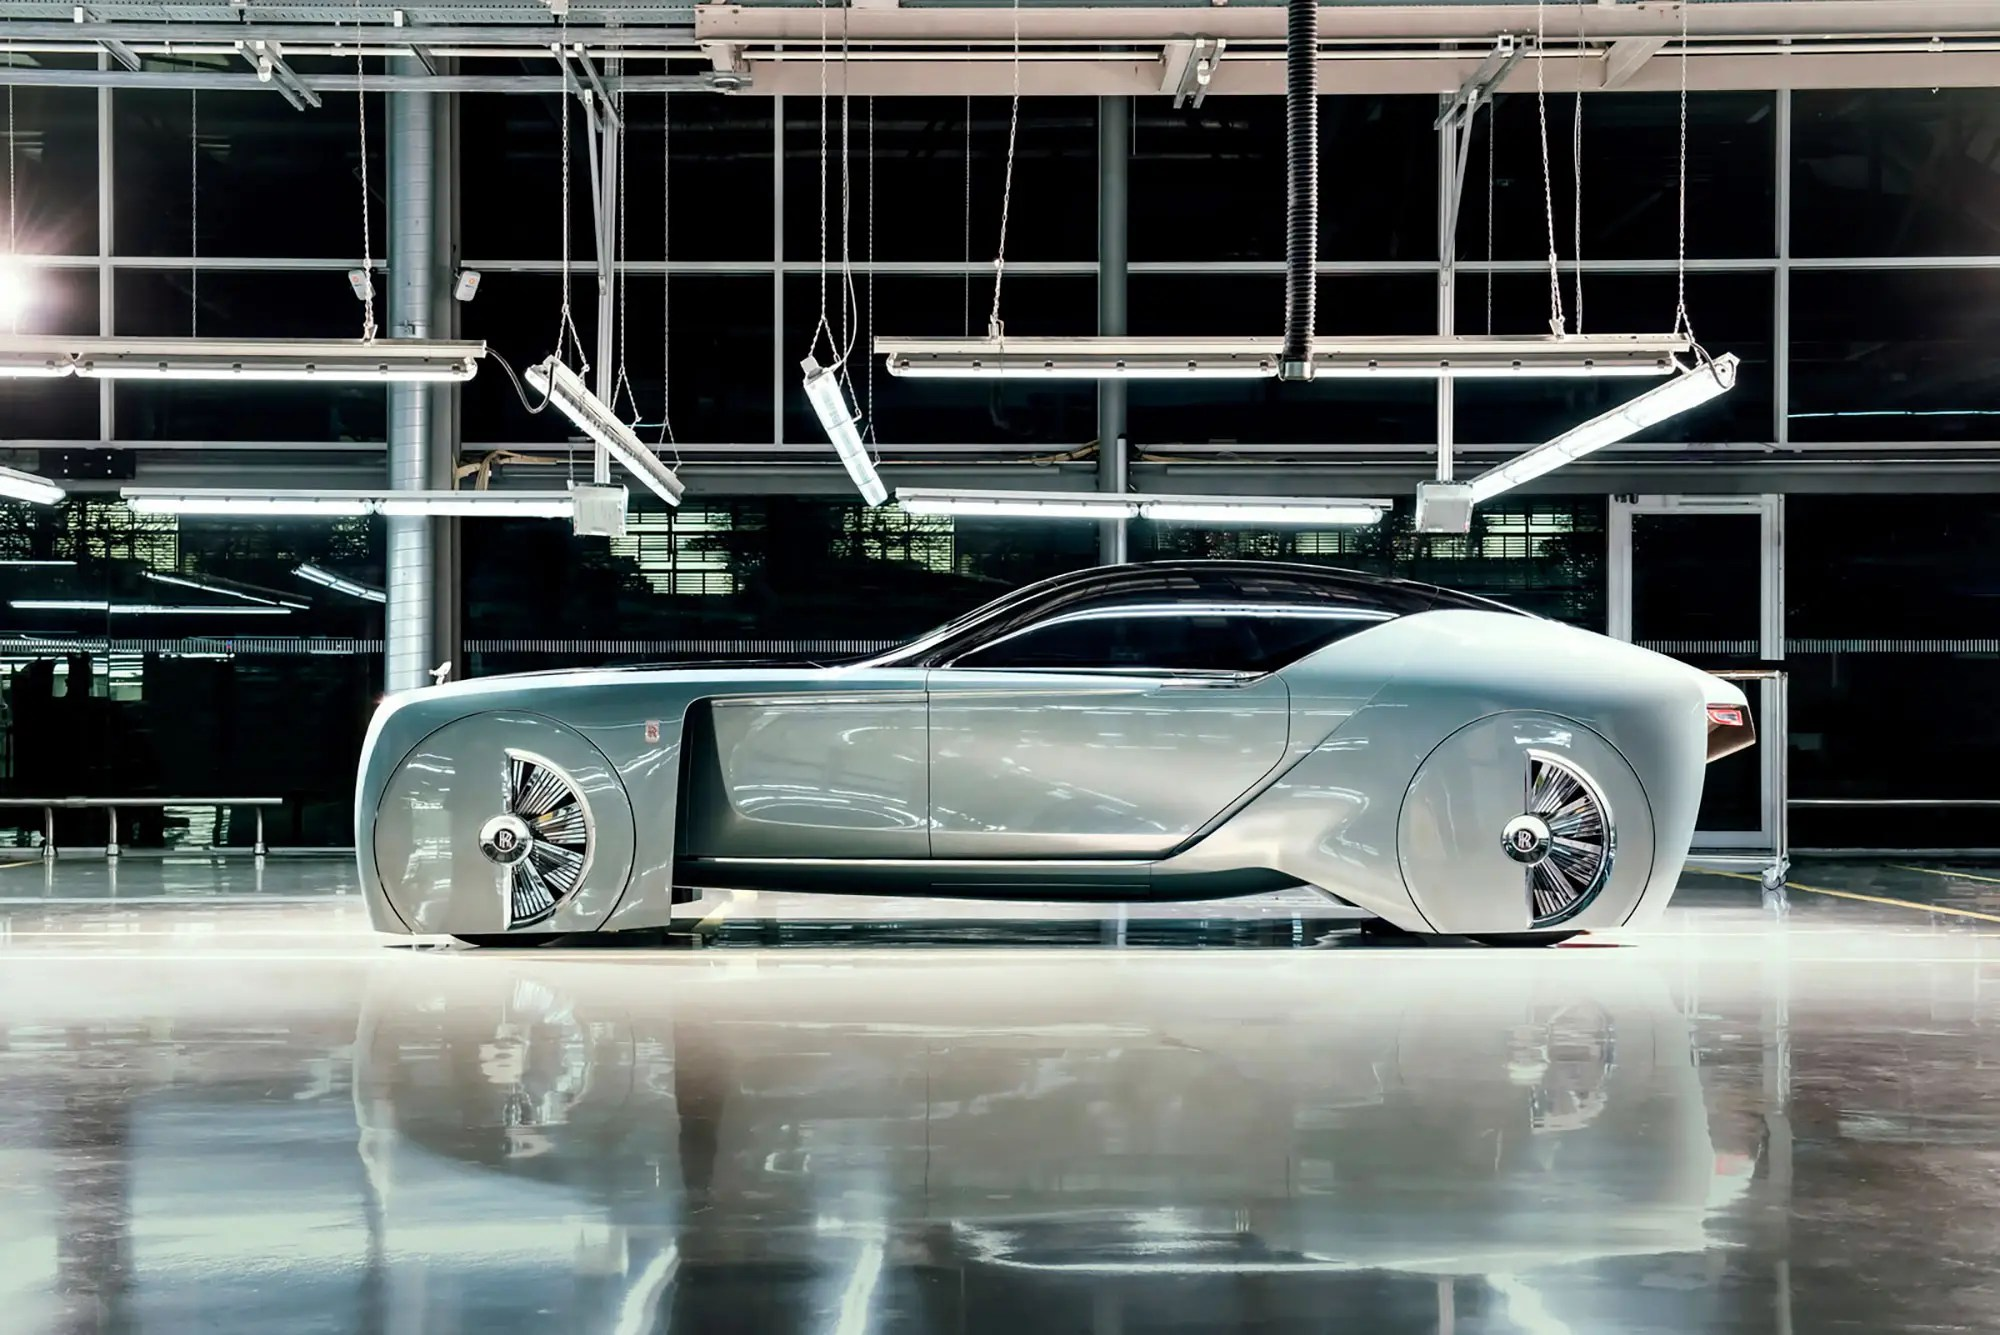 7. The last addition to the BMW Vision 100 line is this futuristic Rolls-Royce.